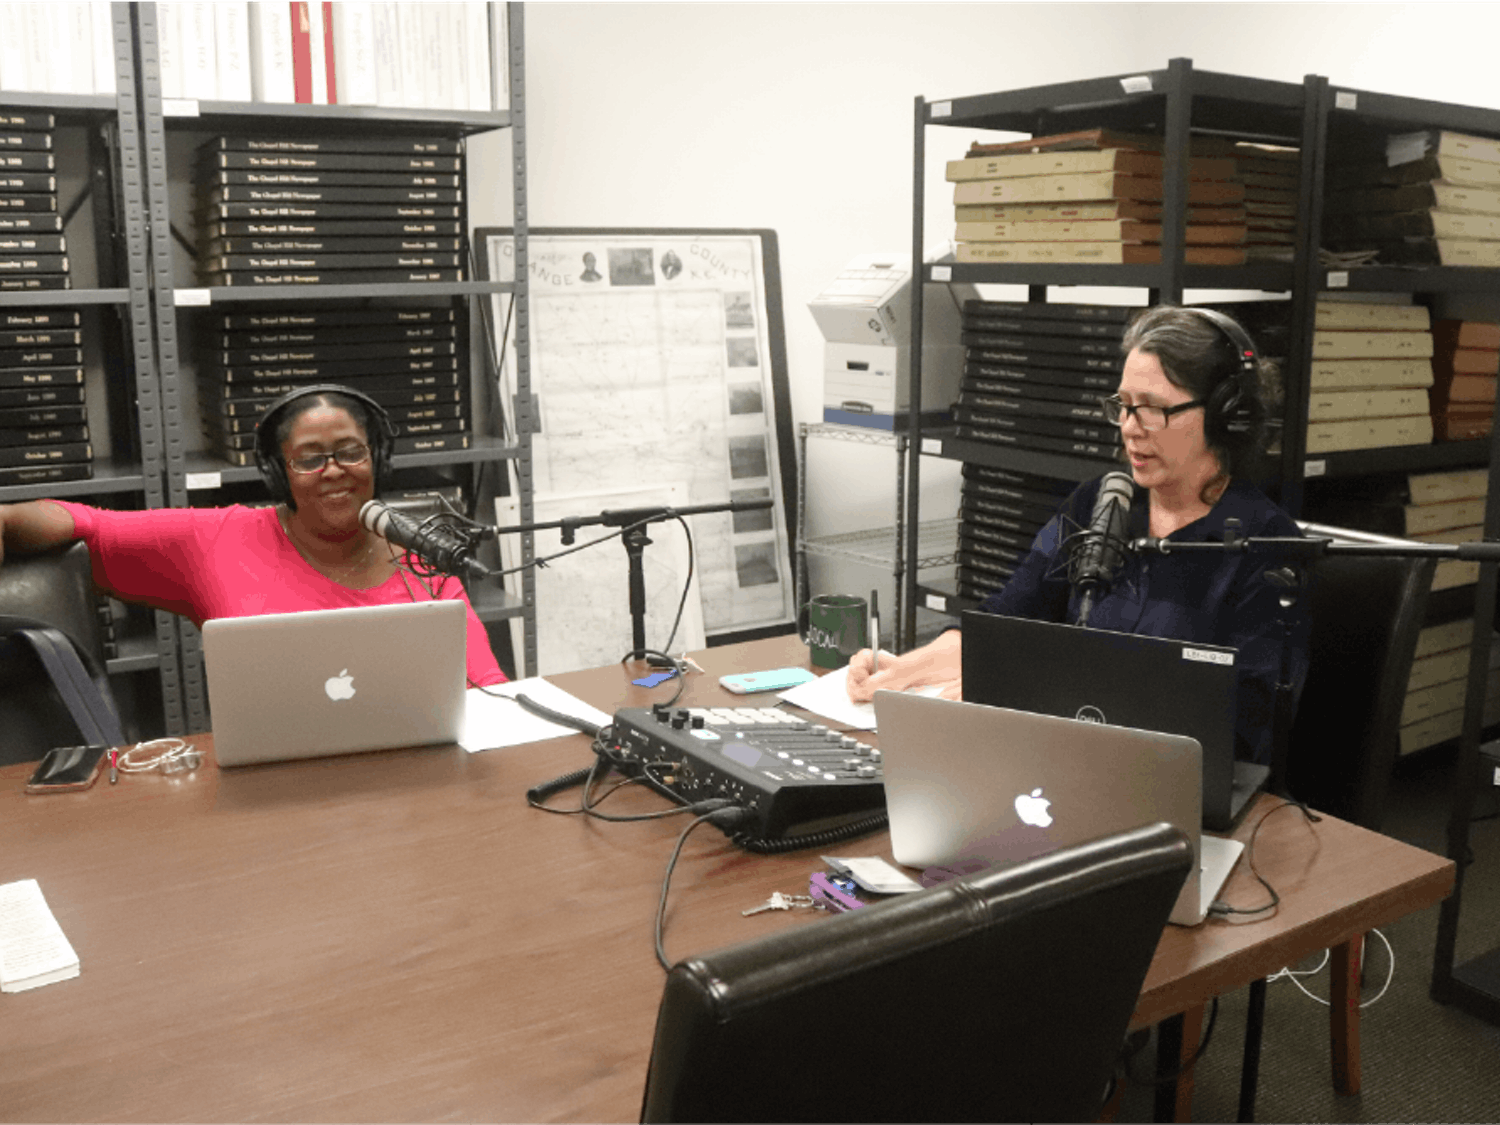 Co-hosts Danita Mason-Hogans (Left) and Molly Luby record the Chapel Hill Public Library's new local history podcast. The podcast, launched earlier this year, spends the first season discussing the history behind different monuments and markers in Chapel Hill. Photo courtesy of Omar Roque.